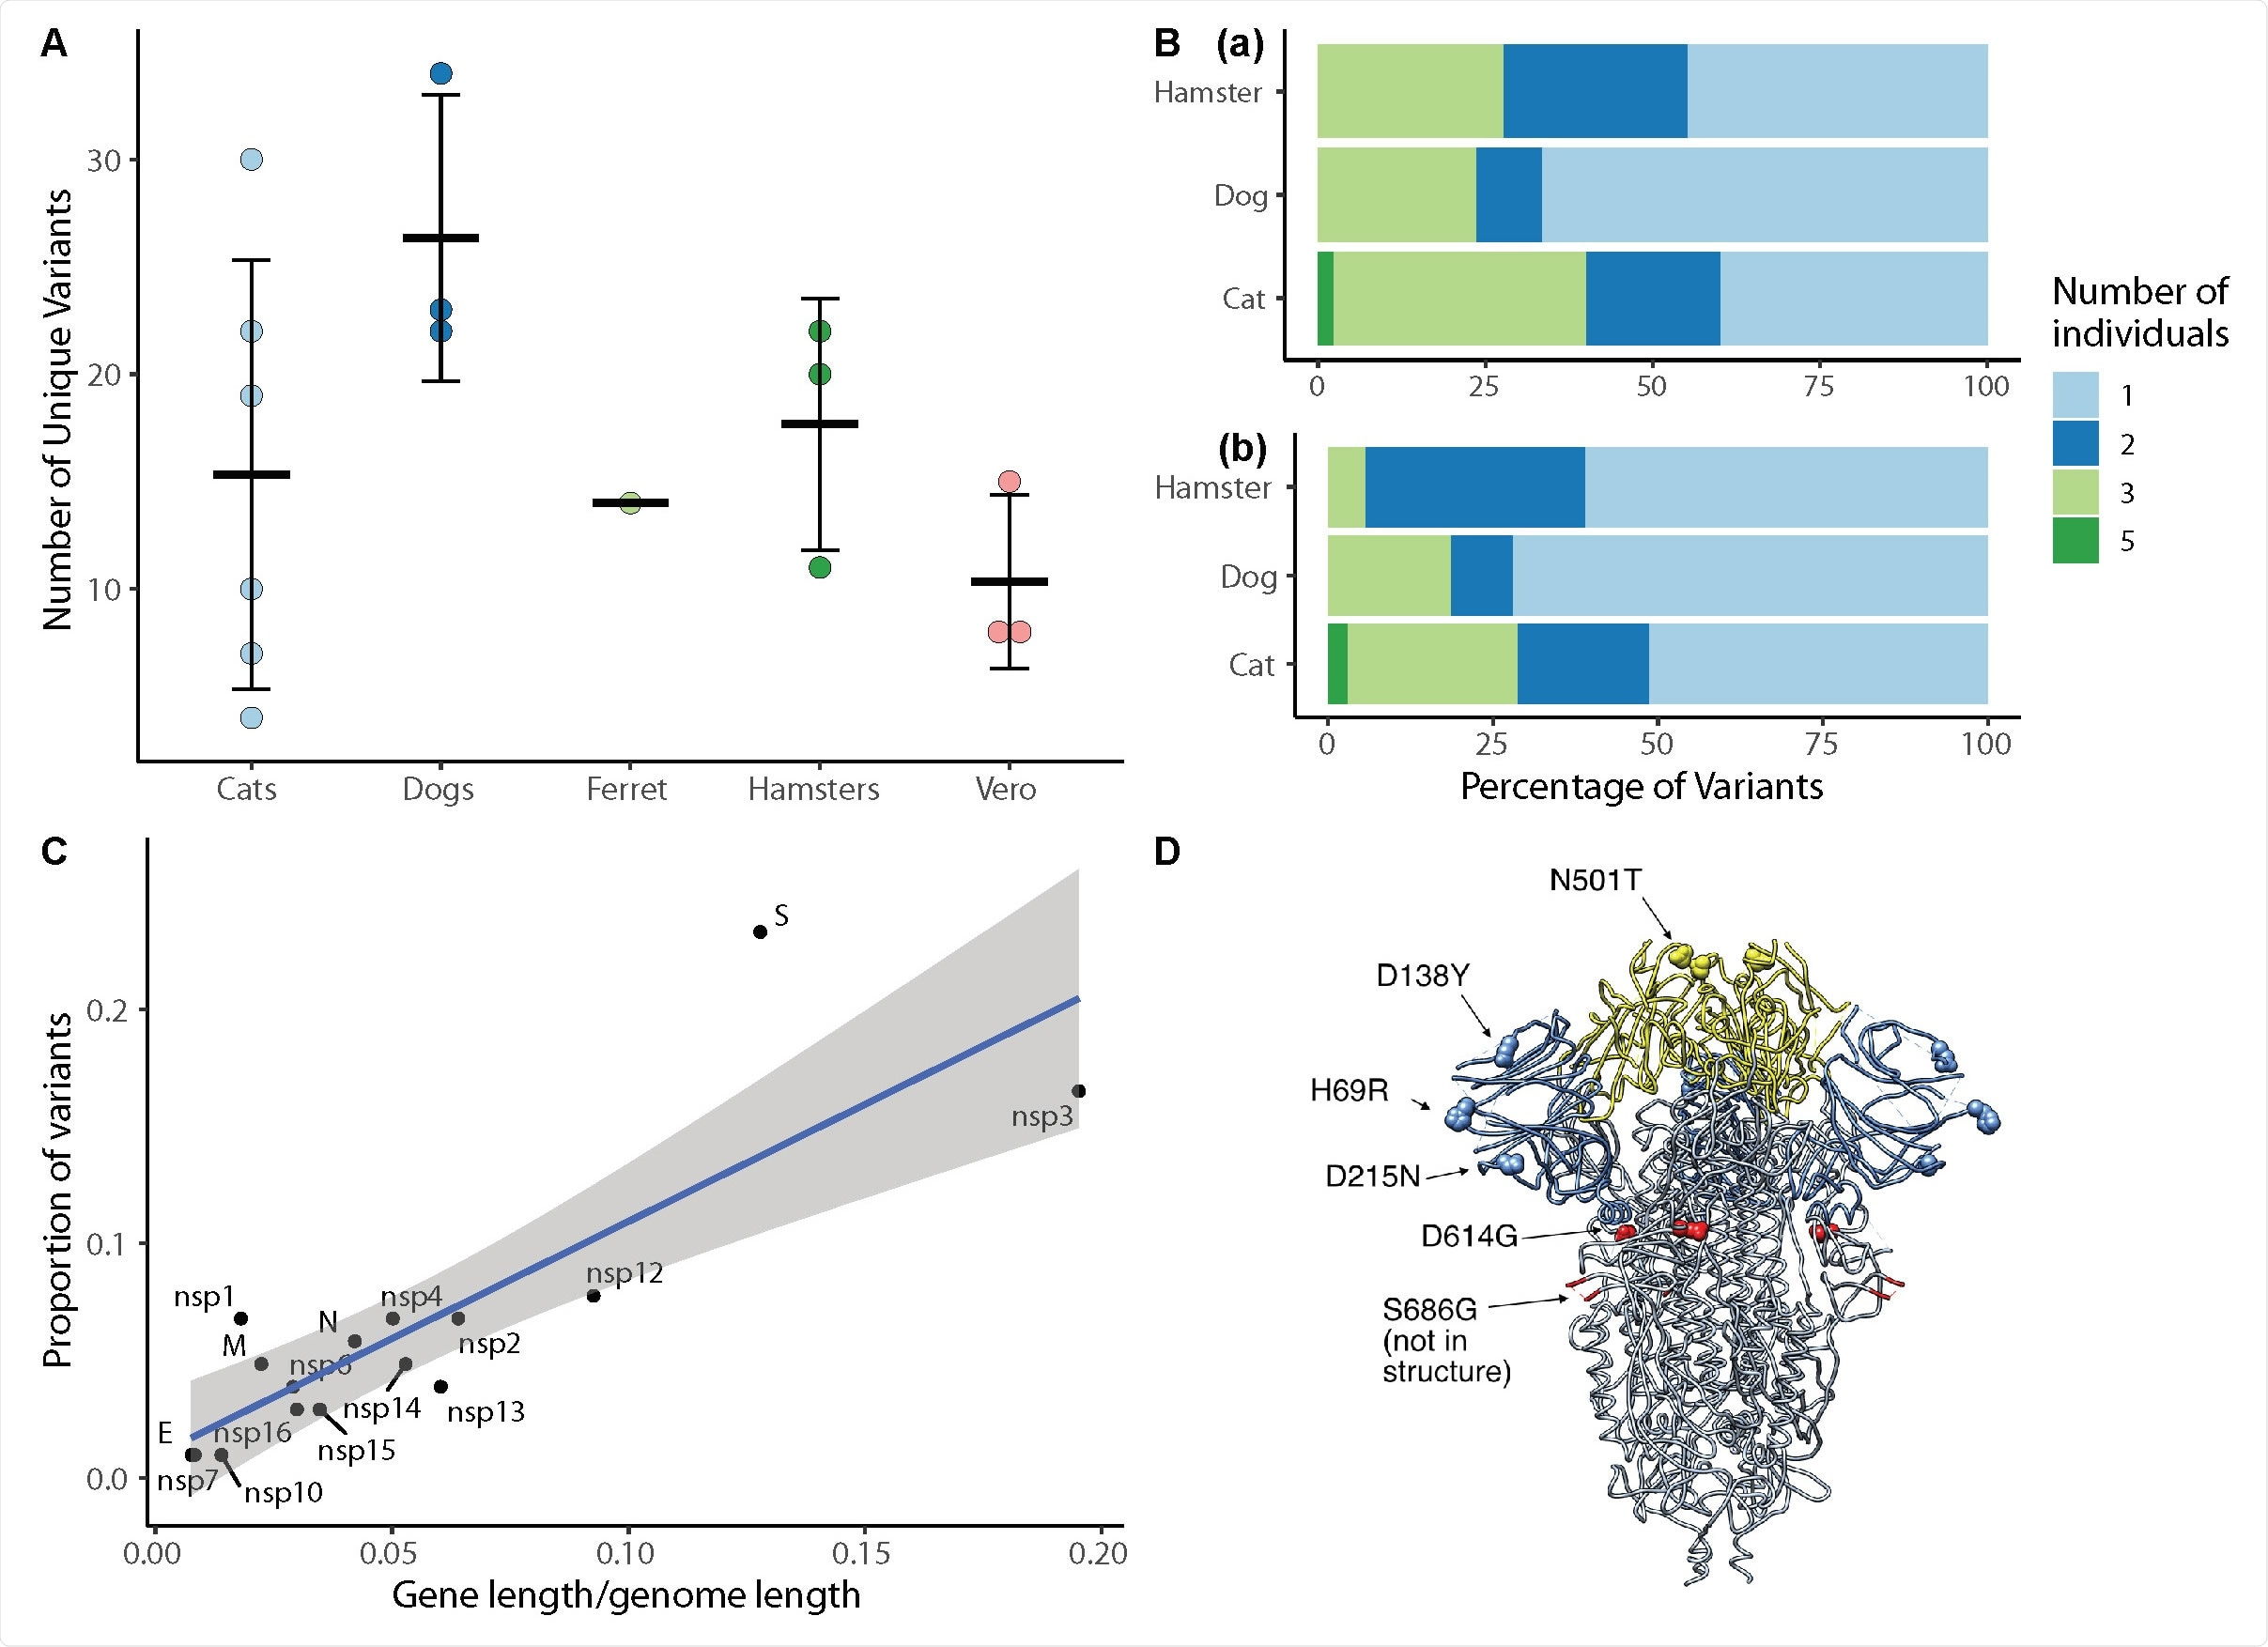 SARS-CoV-2 viral evolution differs across species, gene regions, and individuals. (A) Each point indicates the number of unique variants detected at ≥ 3% frequency in SARS-CoV-2 genomes recovered from individual animals. There is no significant difference in the number of unique variants detected in different species (ANOVA,